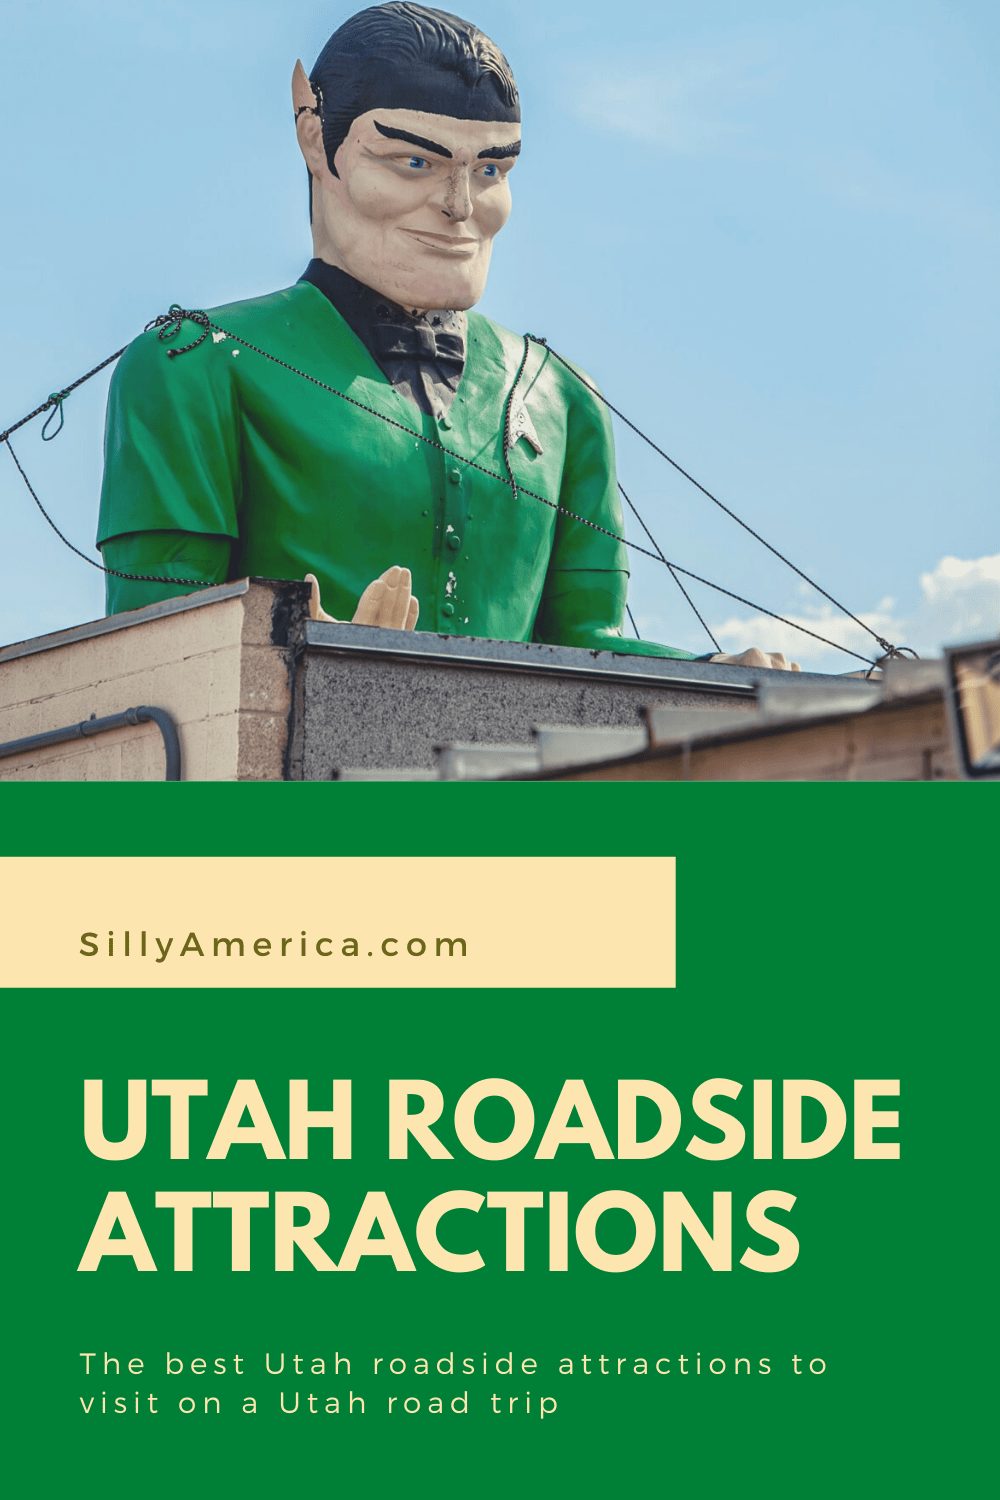 The best Utah roadside attractions to visit on a Utah road trip or weekend getaway. Add these roadside oddities to your travel bucket list or itinerary! #UtahRoadsideAttractions #UtahRoadsideAttraction #RoadsideAttractions #RoadsideAttraction #RoadTrip #UtahRoadTrip #UtahRoadTripWithKids #UtahRoadTripBucketLists #UtahBucketList #UtahRoadTripItinerary #UtahRoadTripPictures #UtahRoadTripMap #UtahWeekendRoadTrip #SaltLakeCityRoadTrip #UtahRoadTripAdventure #WeirdRoadsideAttractions